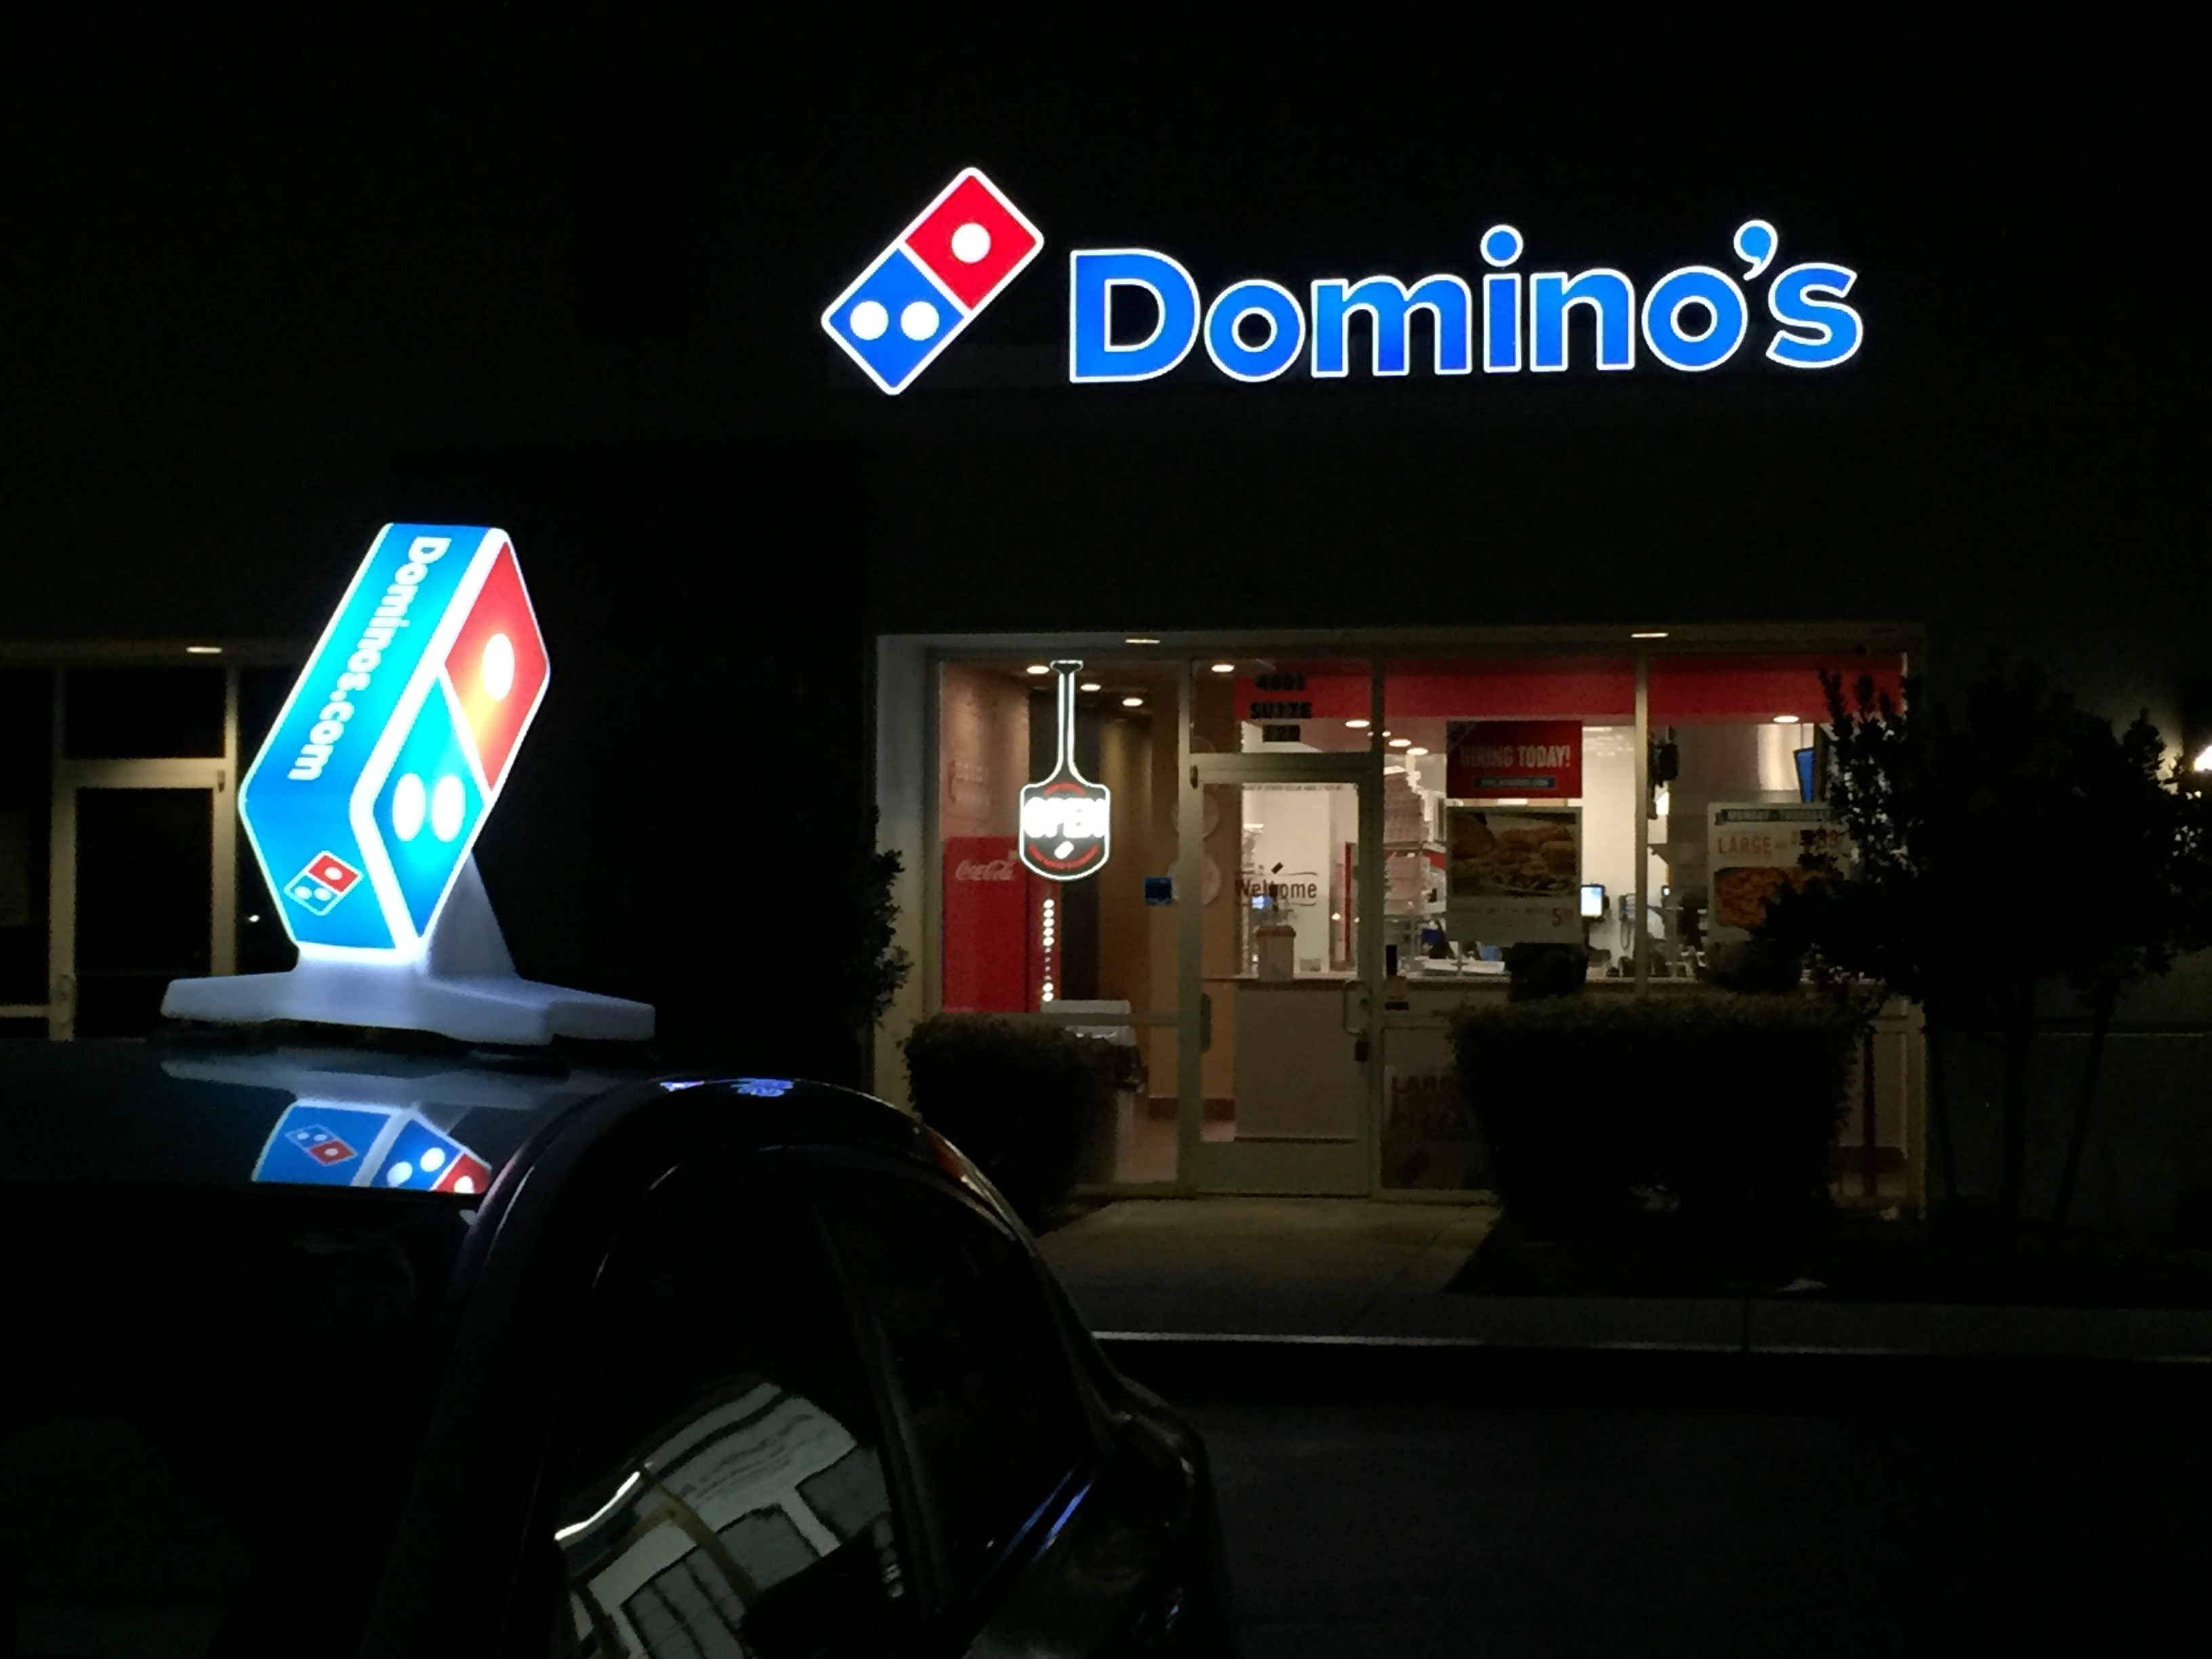 natomas ca seen in natomas second domino s location the second domino s pizza location in natomas up and running photo natomasbuzz com